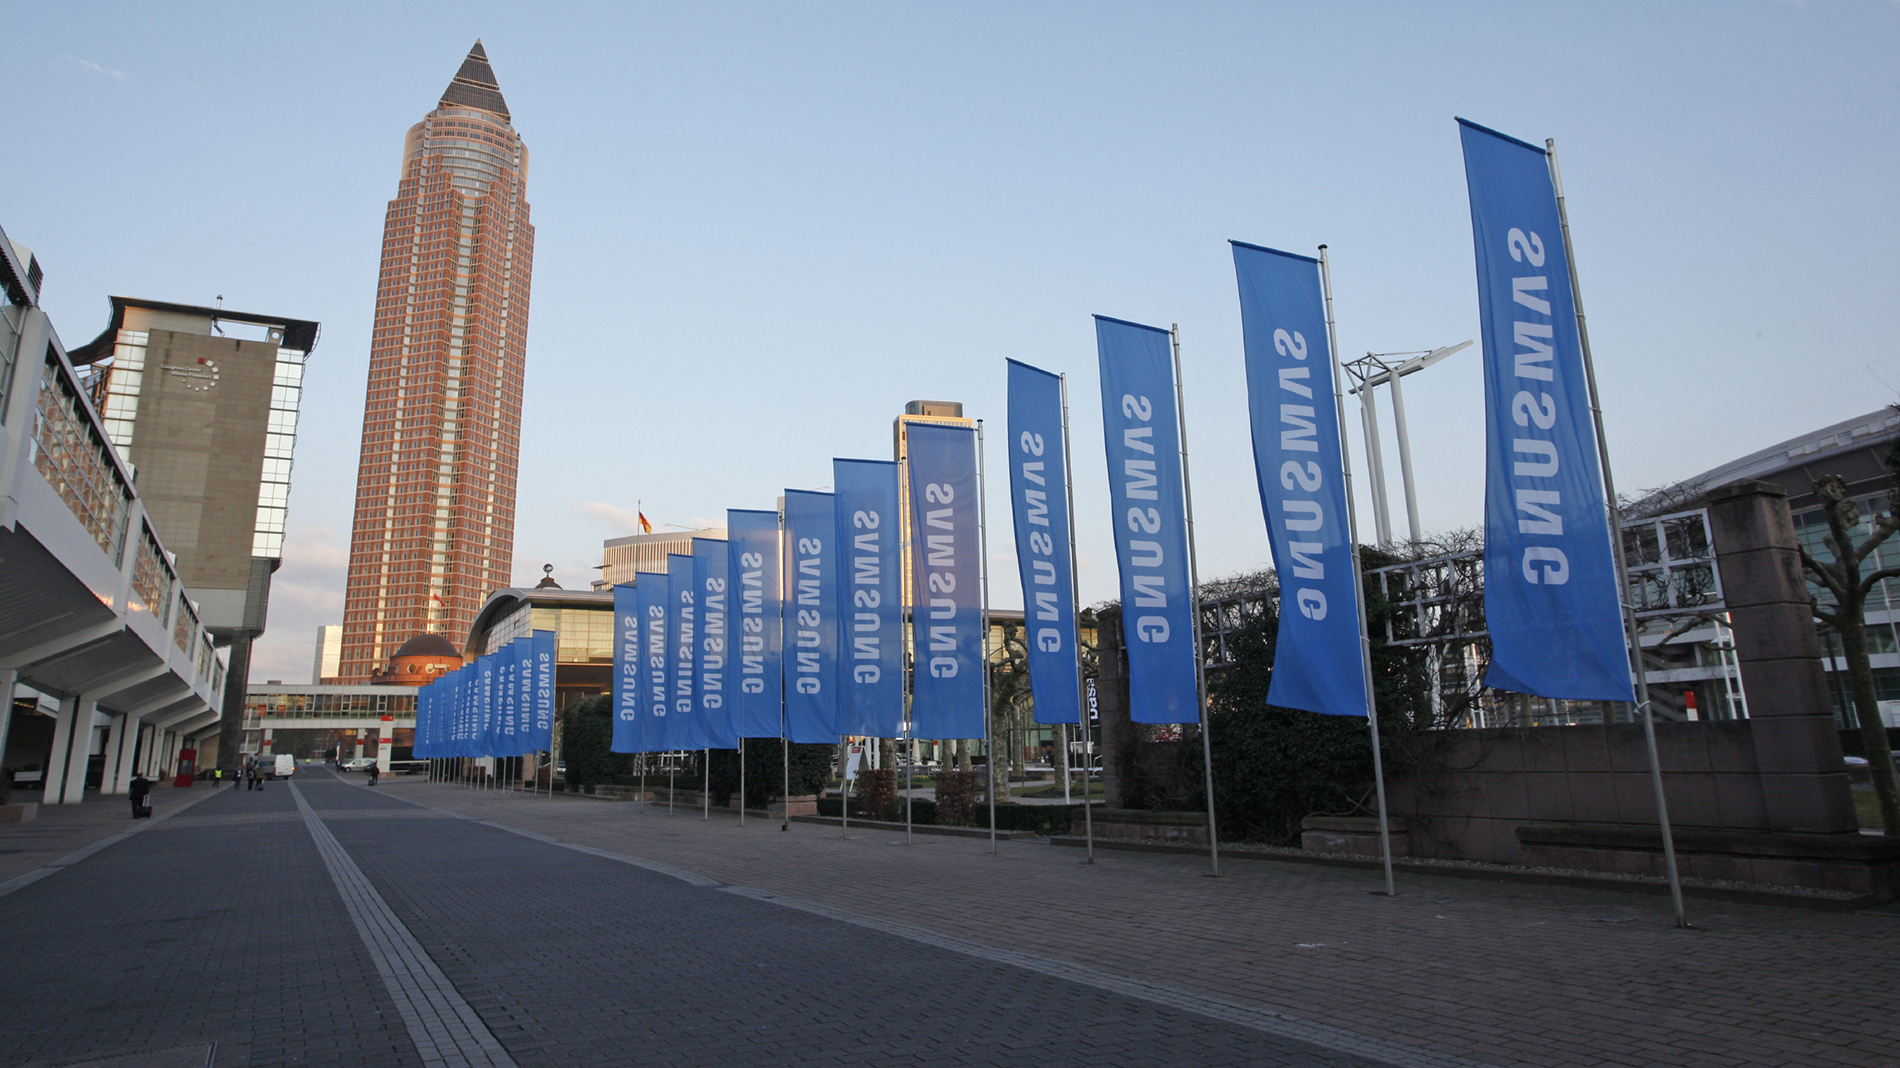 Omen advertising flags at the exhibition ground Messe Frankfurt